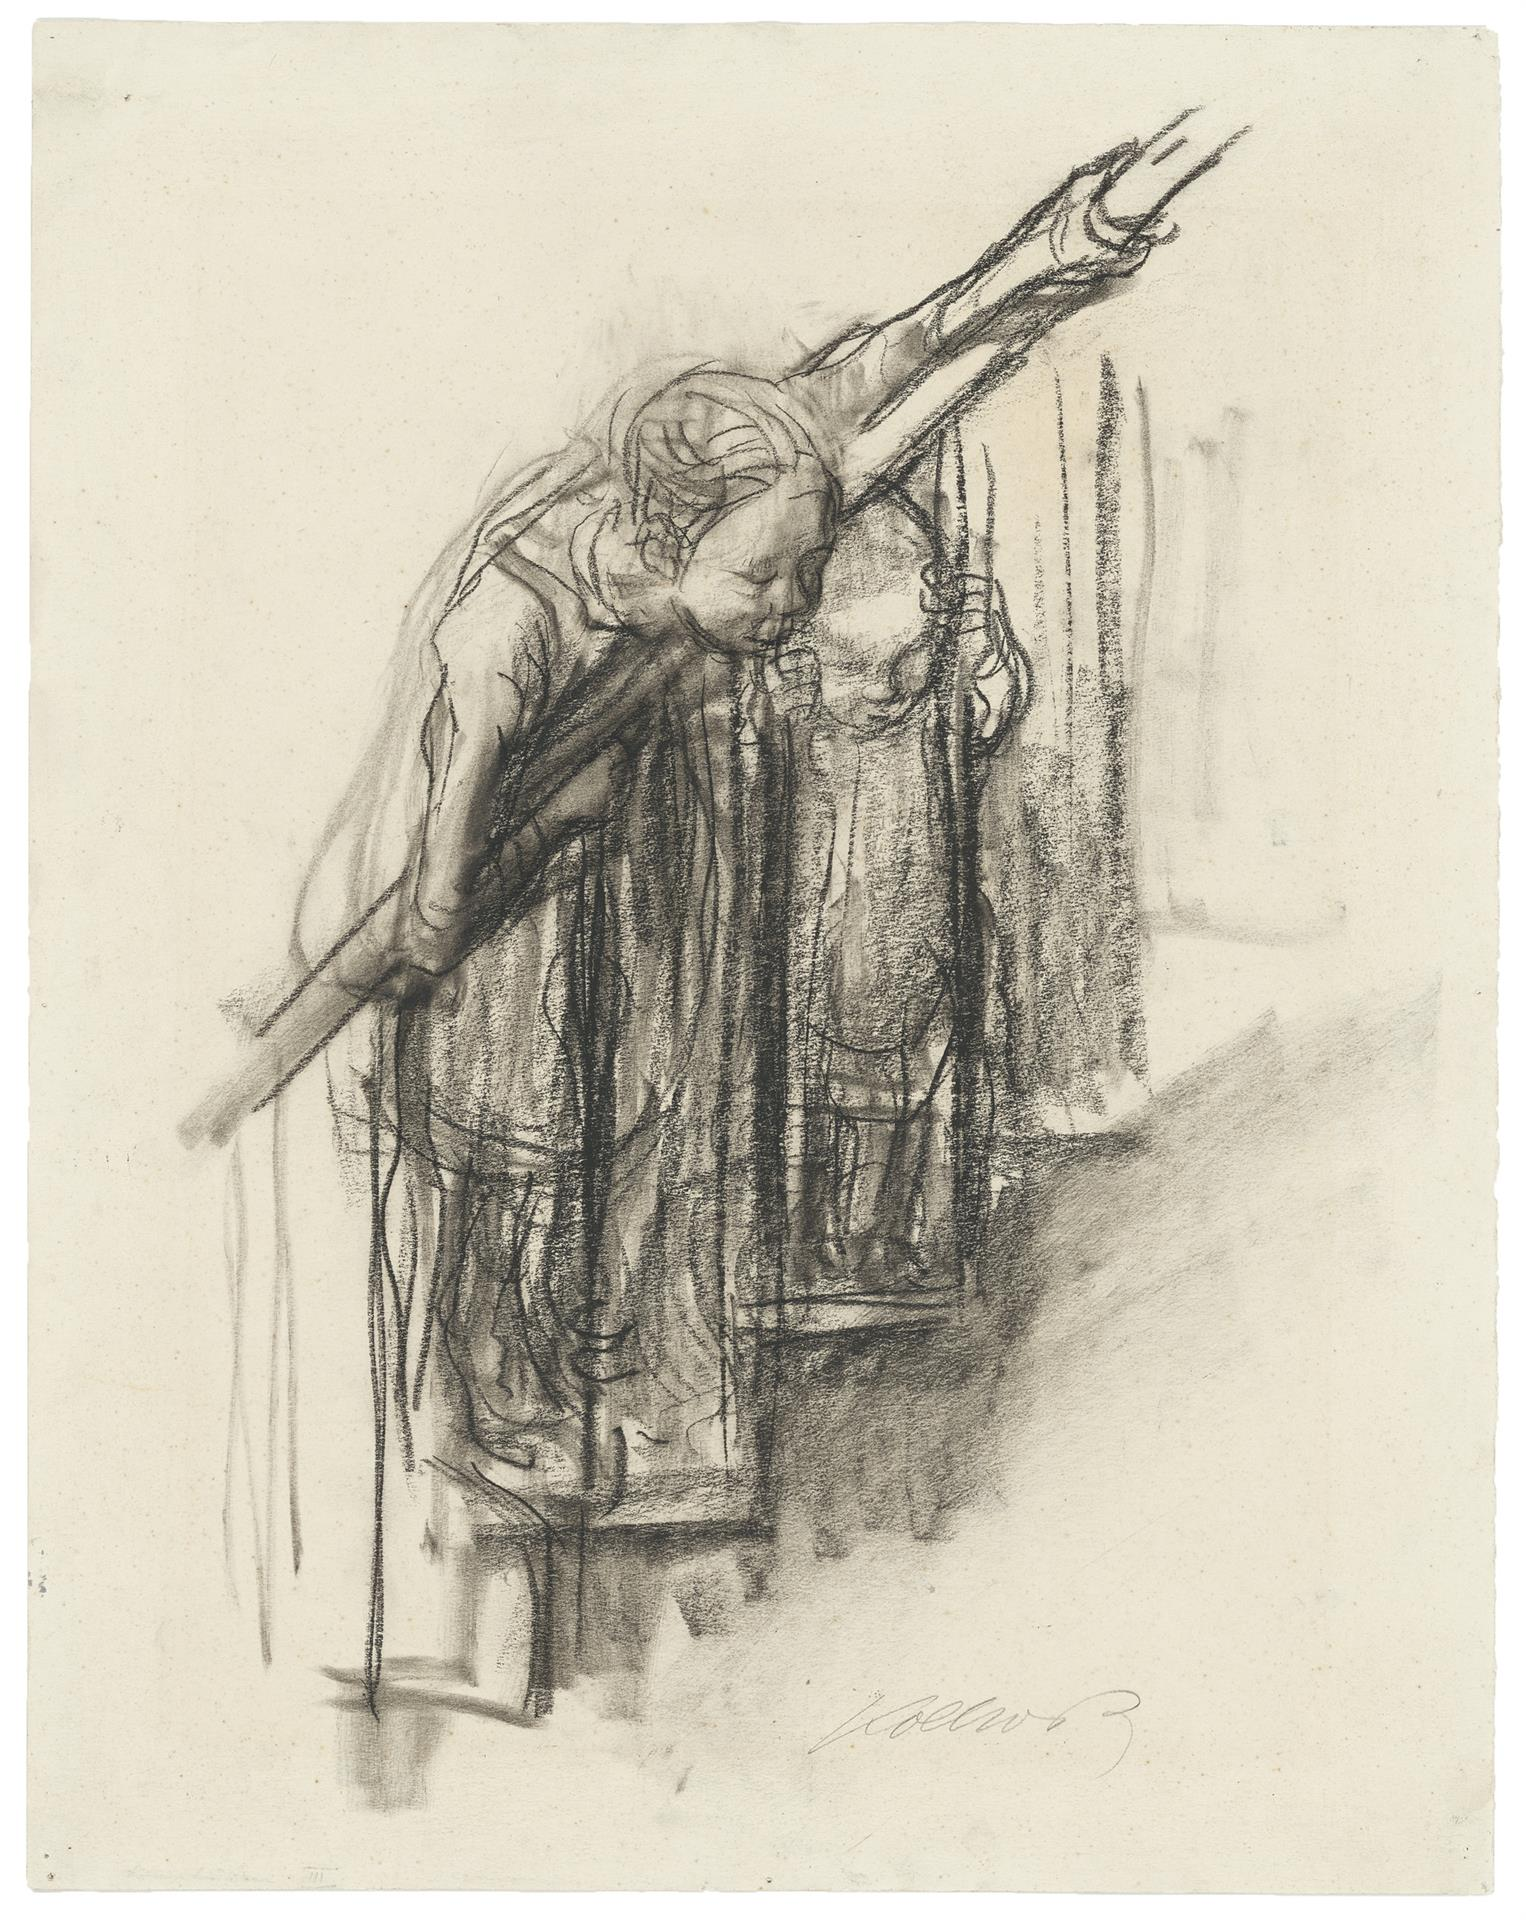 Käthe Kollwitz, Two Children at the Bannister, c 1927, charcoal on faded drawing cardboard, NT 1149, Cologne Kollwitz Collection © Käthe Kollwitz Museum Köln